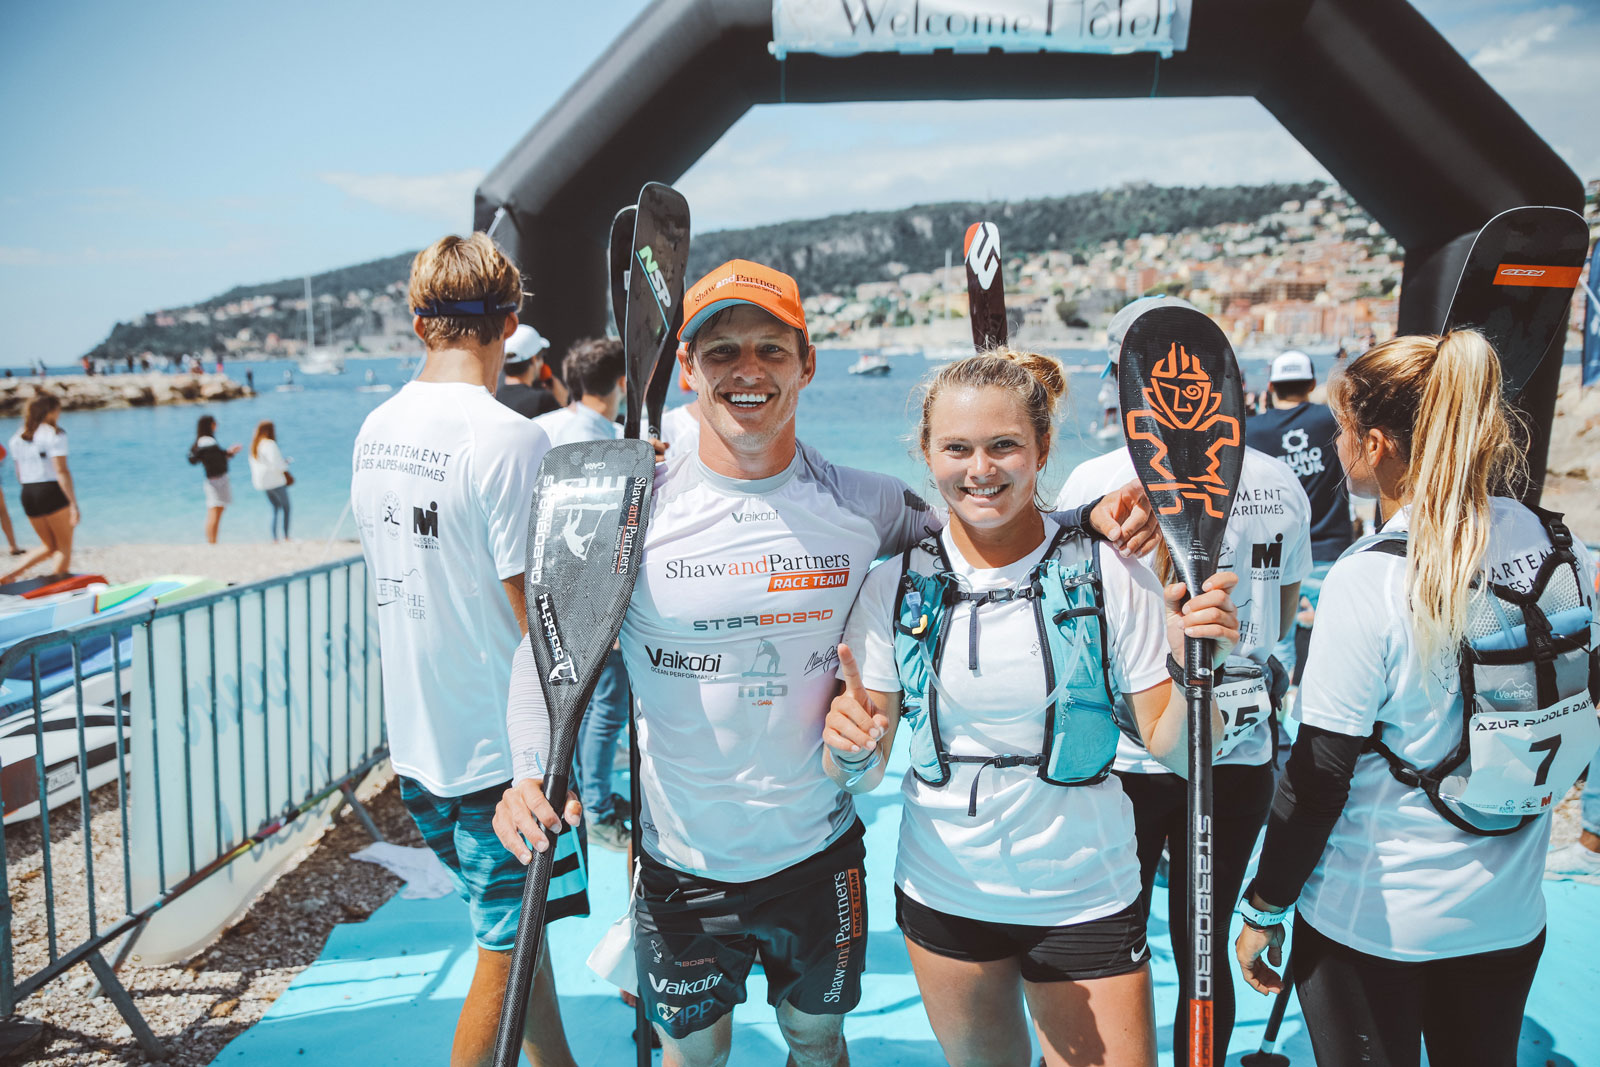 Starboard-SUP-Stand-Up-Paddleboarding-Michael-Booth-Fiona-Wykle-Azur-Paddle-Days-Race-Event-